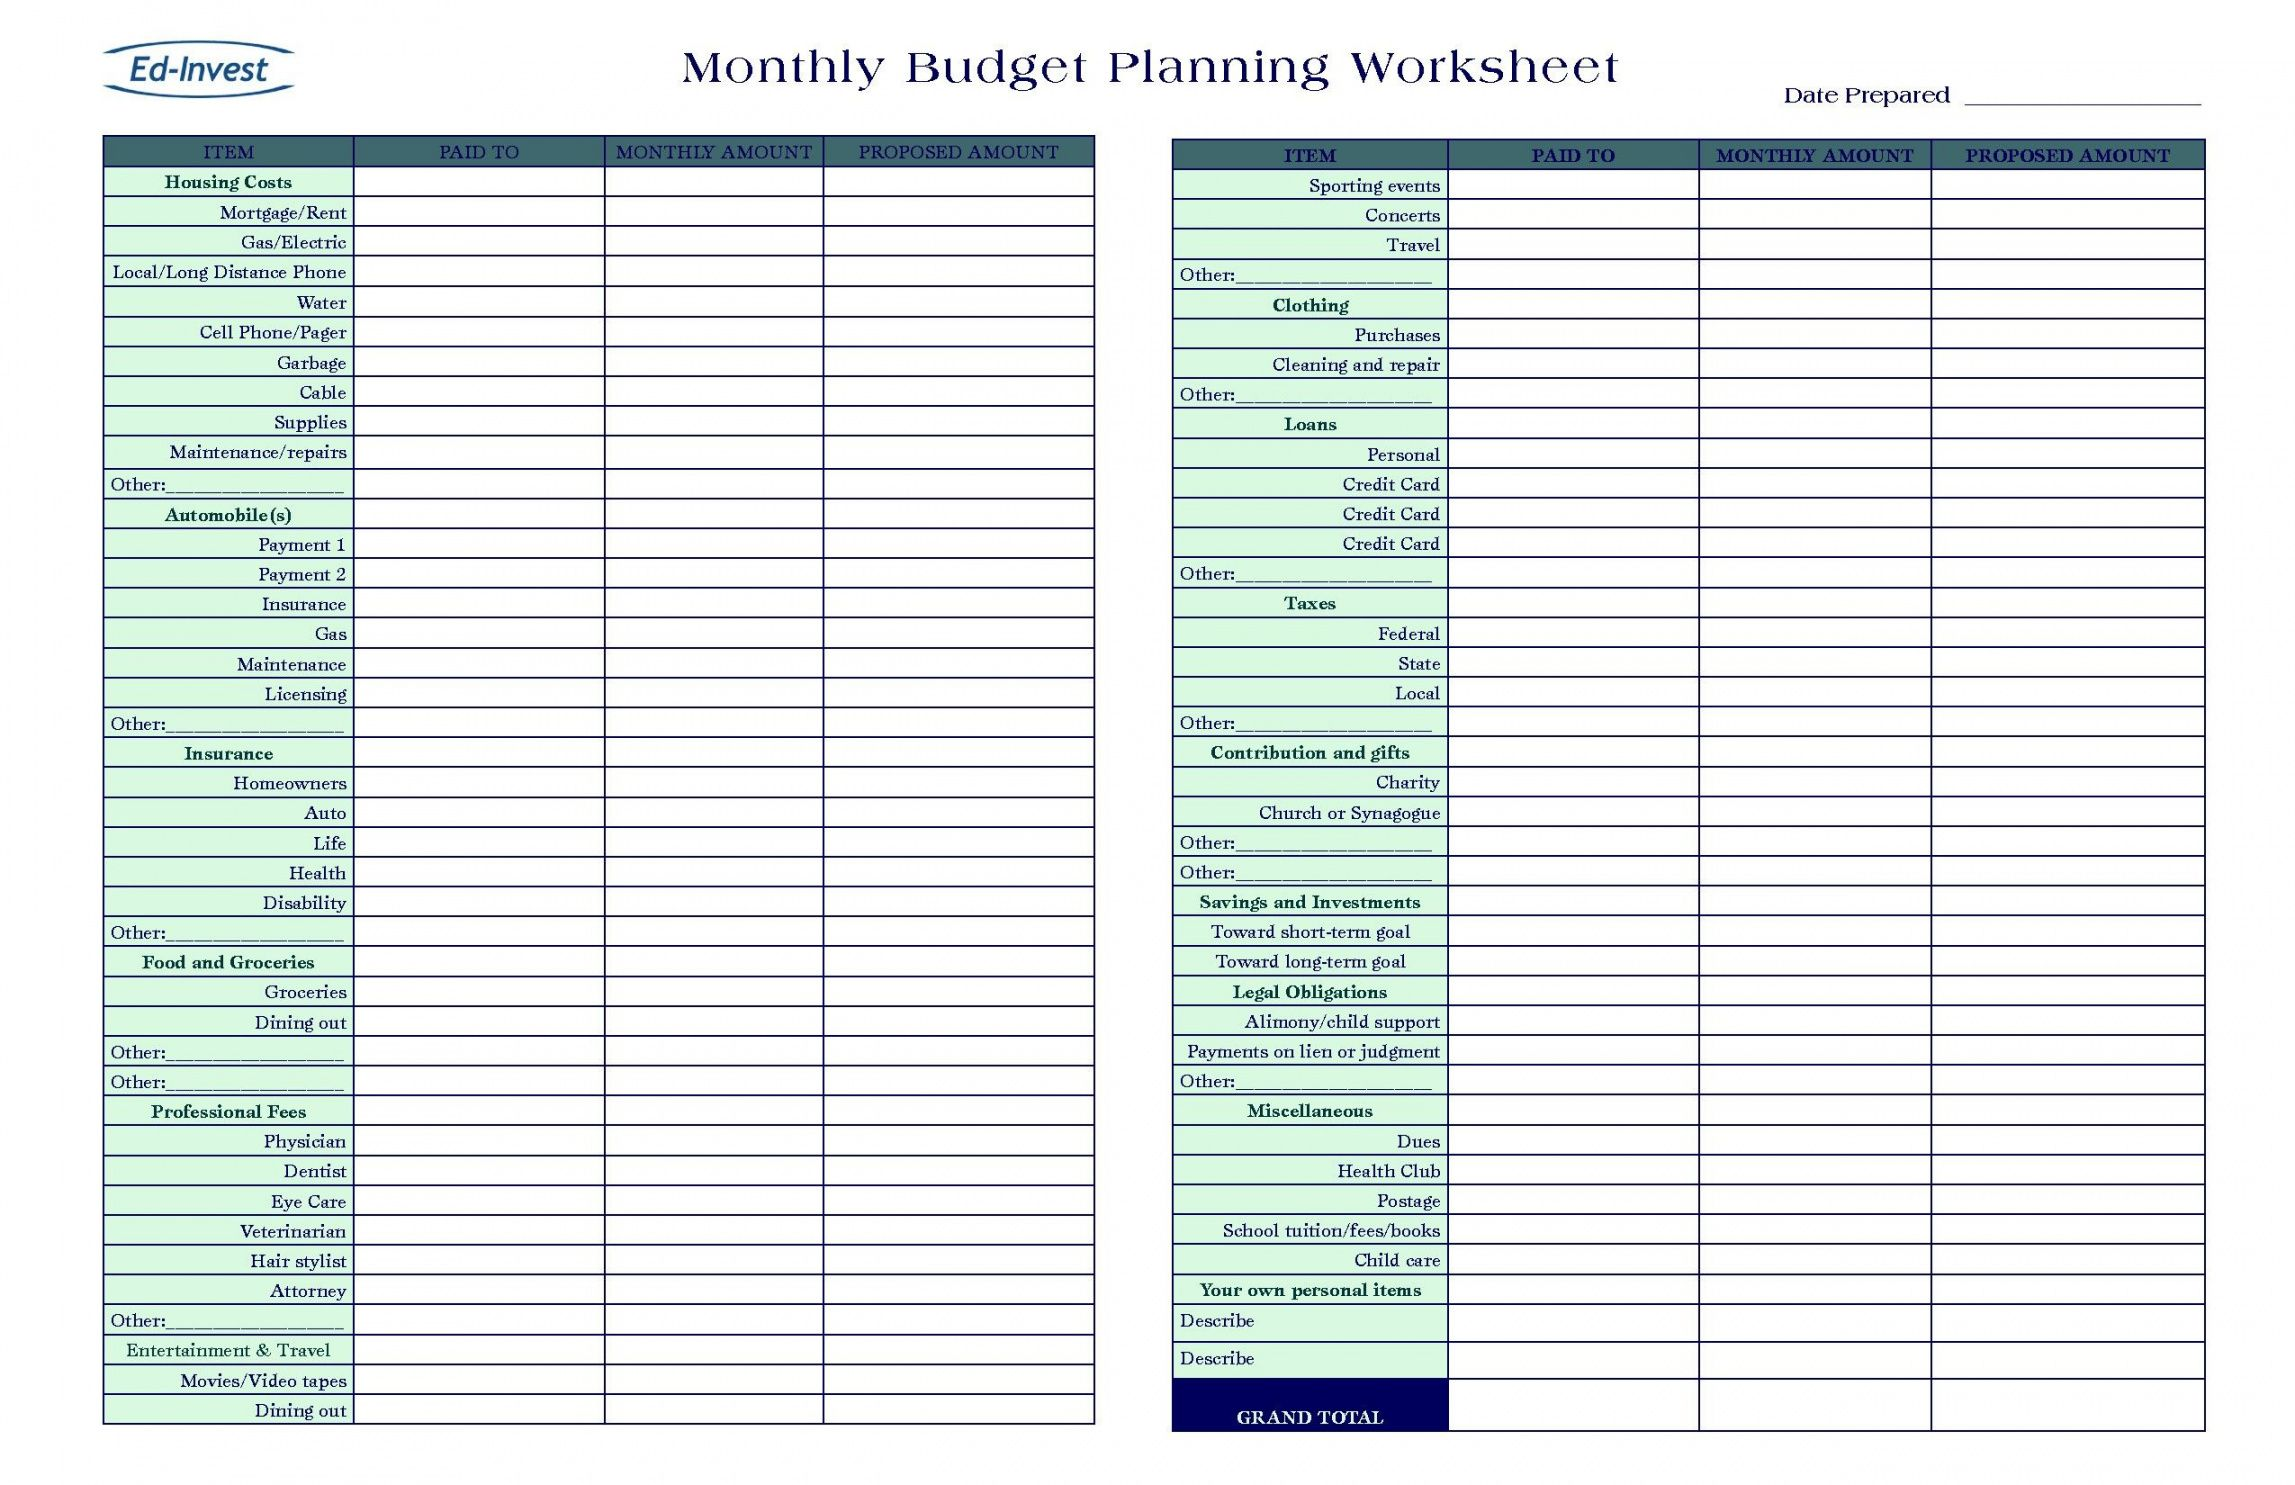 sample spreadsheet budget excel template new exceltemplate xls church event budget template excel